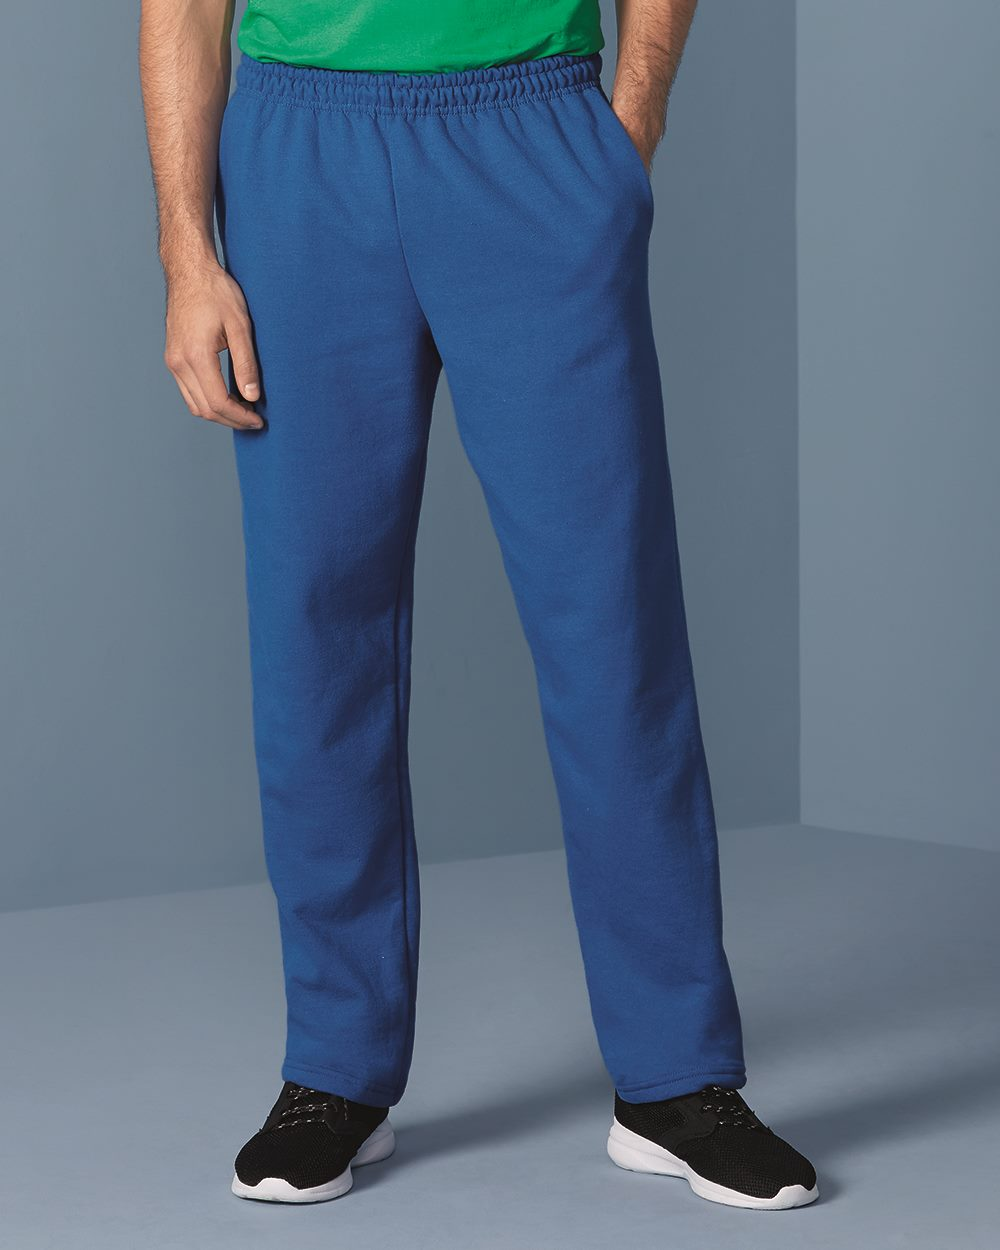 Gildan Heavy Blend Open Bottom Sweatpants with Pockets